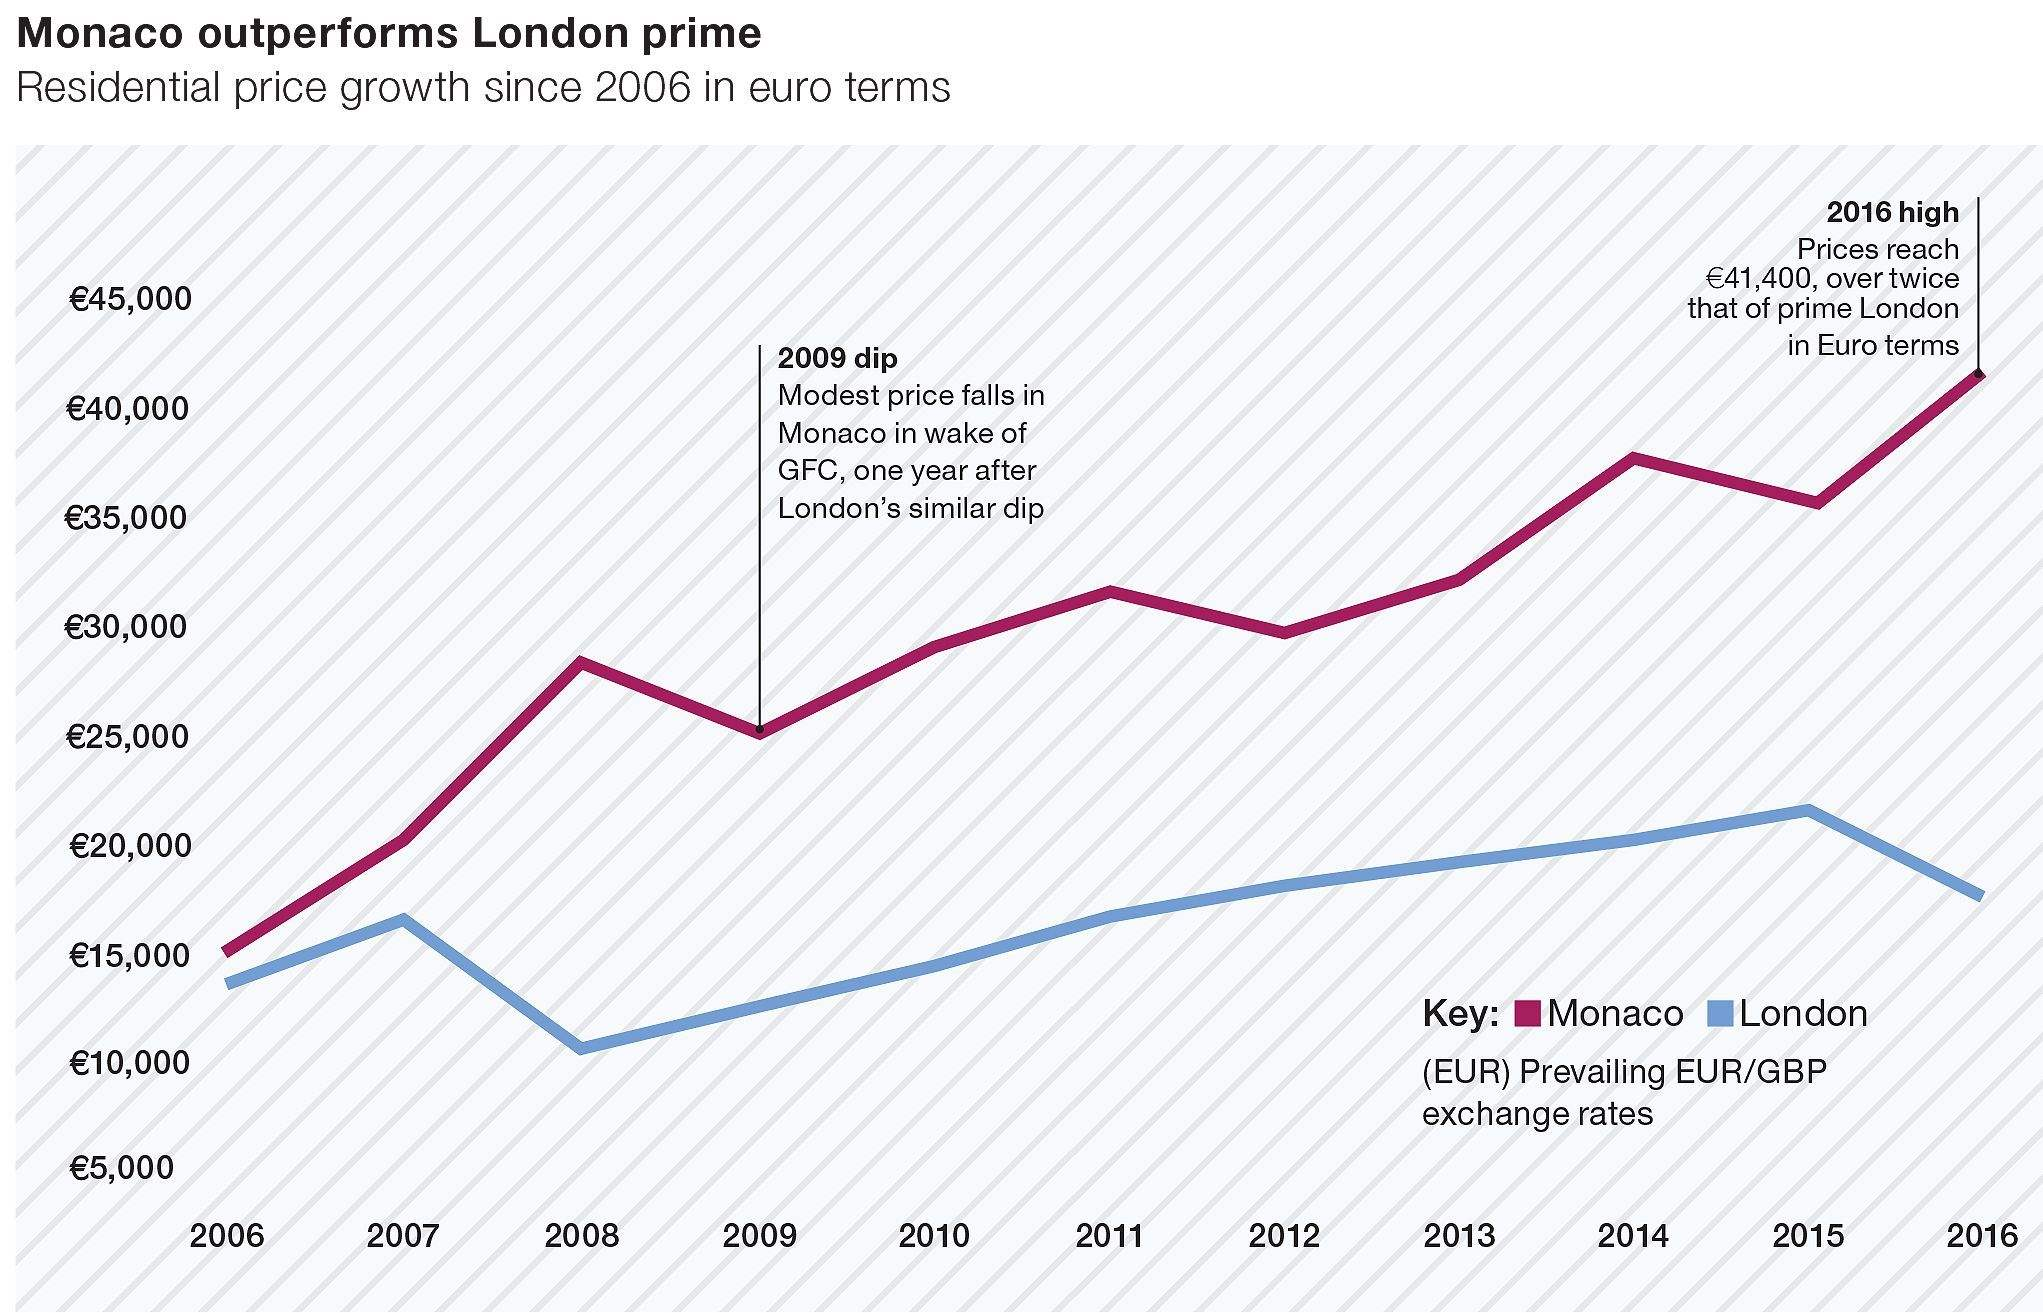 Monaco residential price growth since 2006 in euro terms